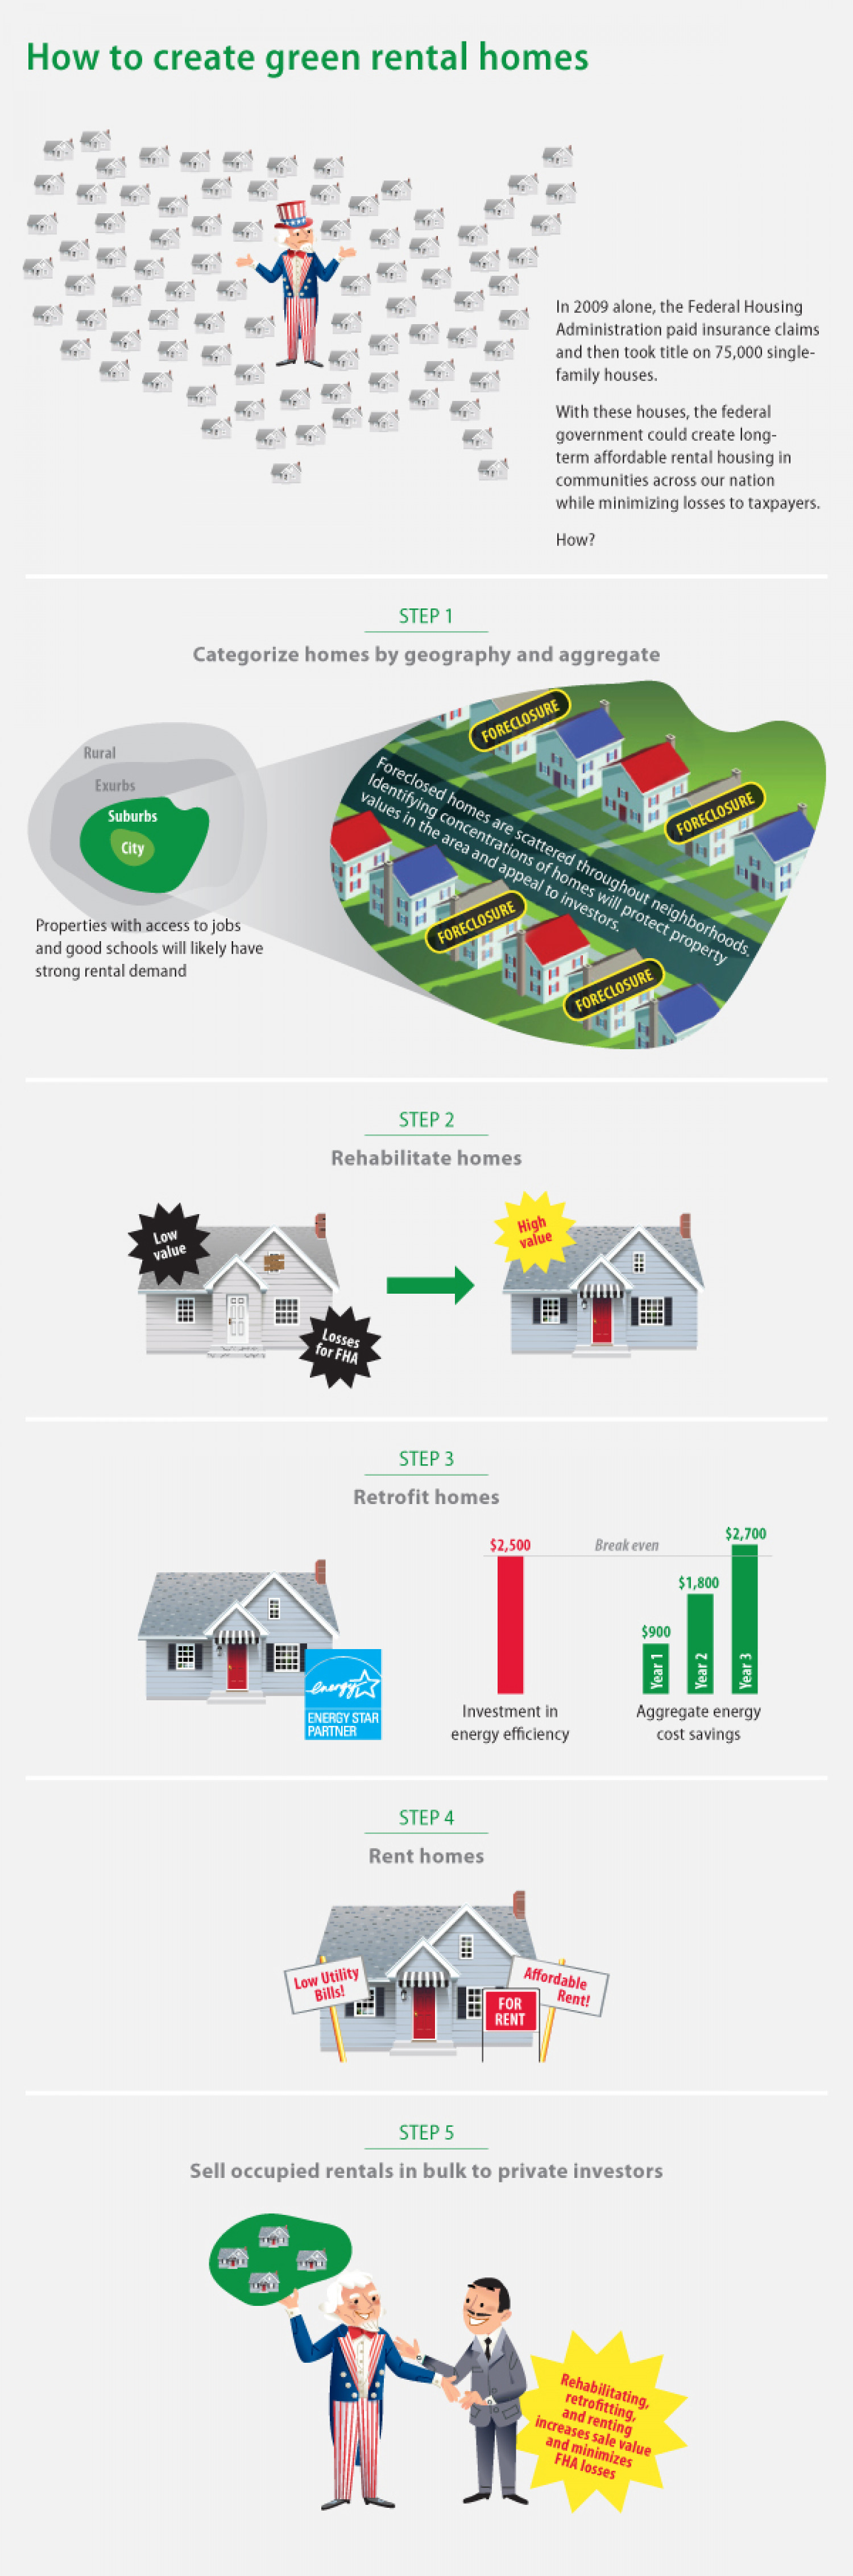 How to Create Green Rental Homes Infographic